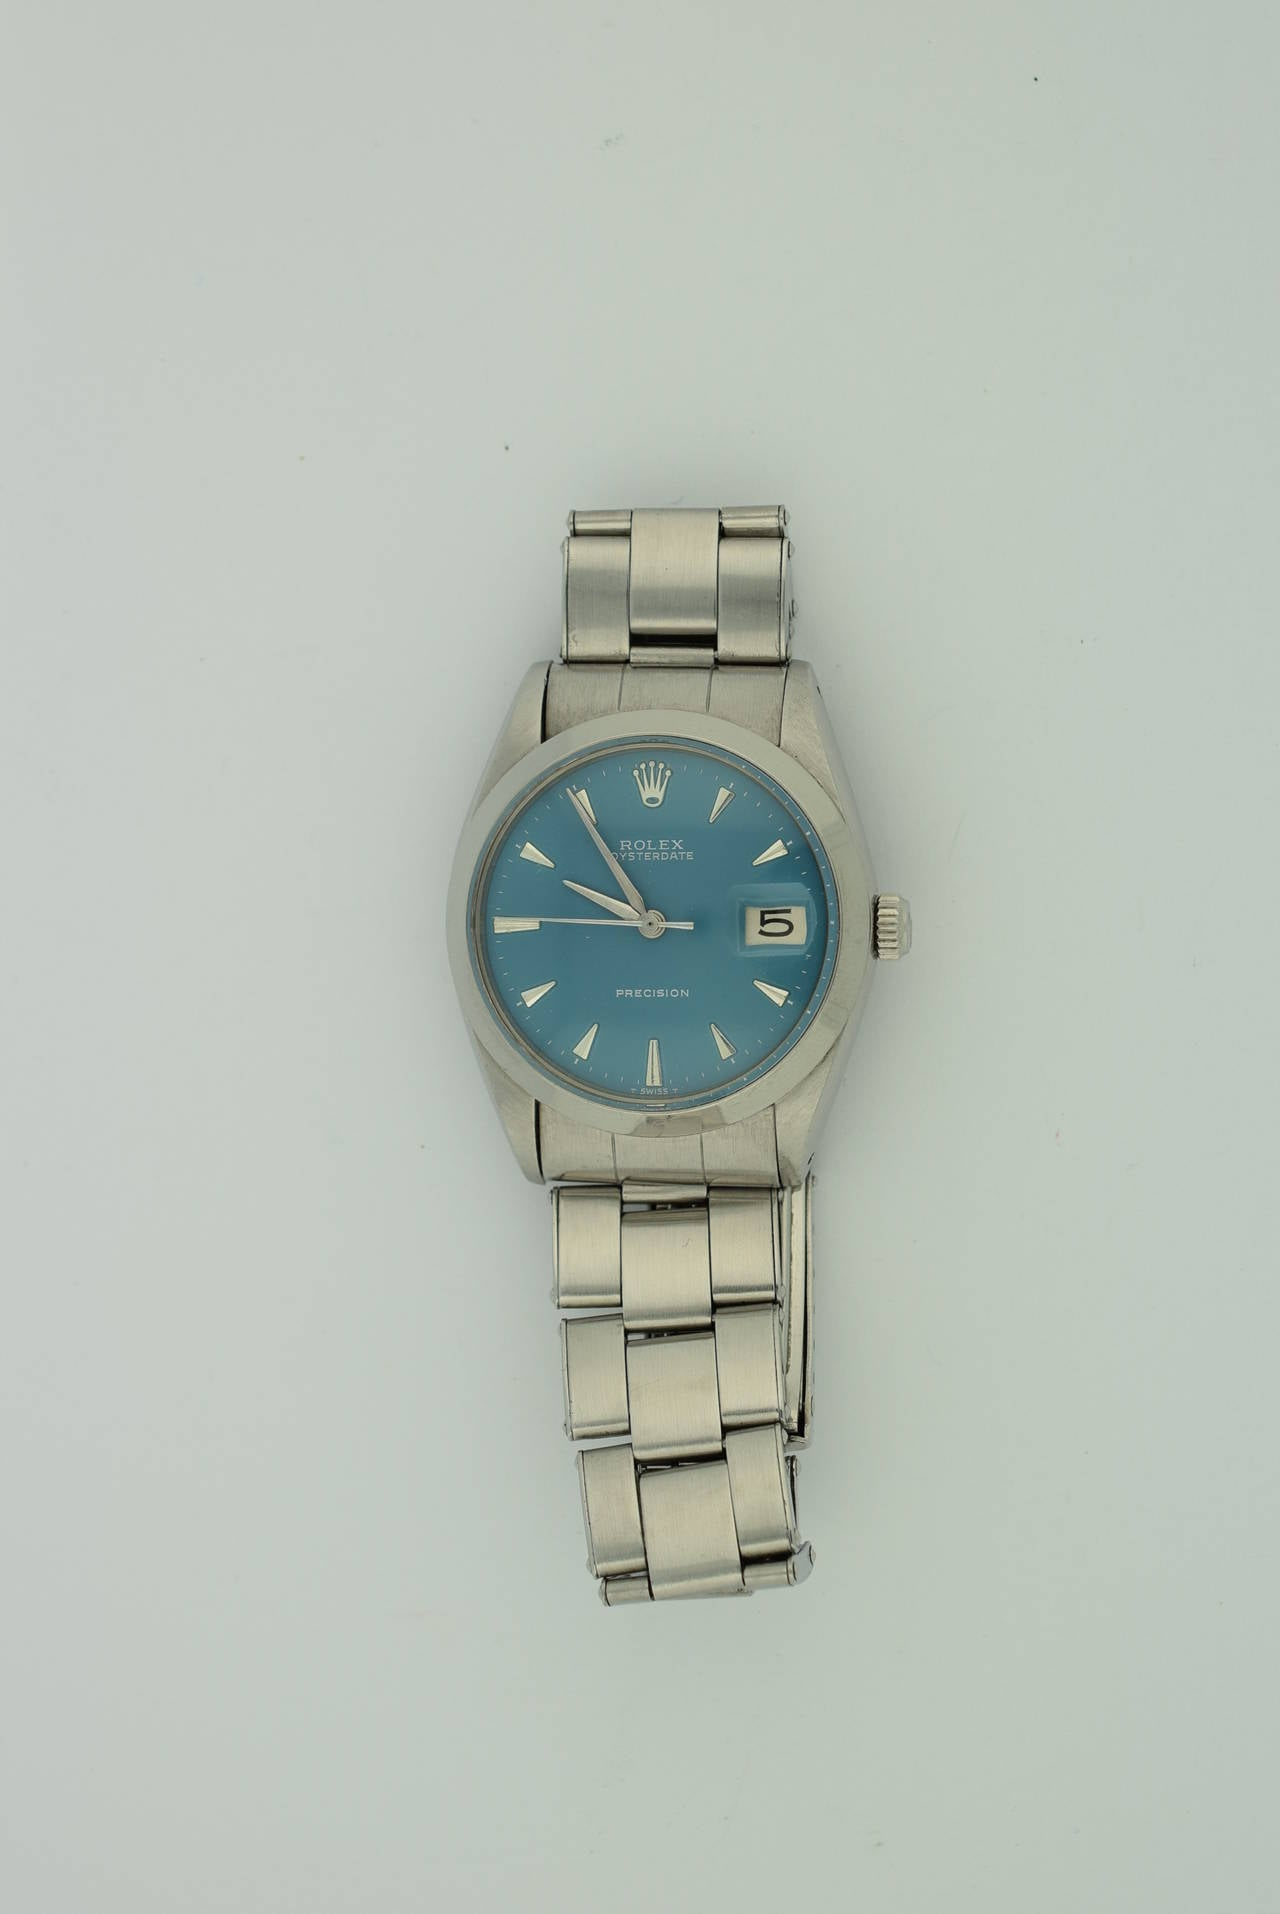 Rolex Air King 14010m 34mm Rolex Air King 14010m Preise